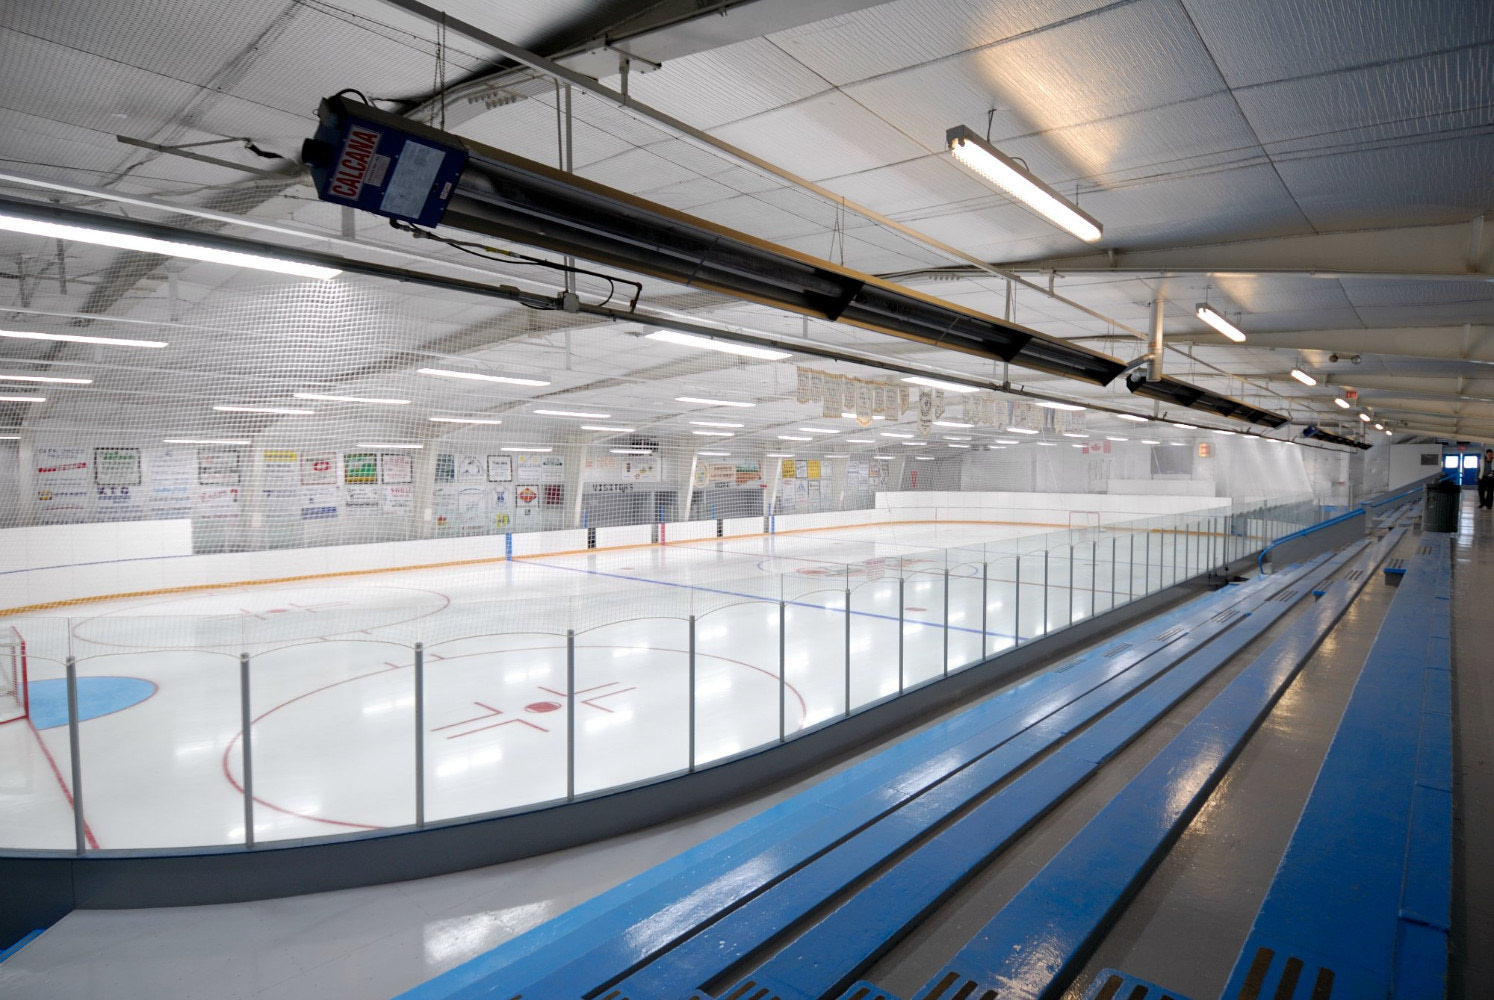 LED lighting solutions for a hockey arena